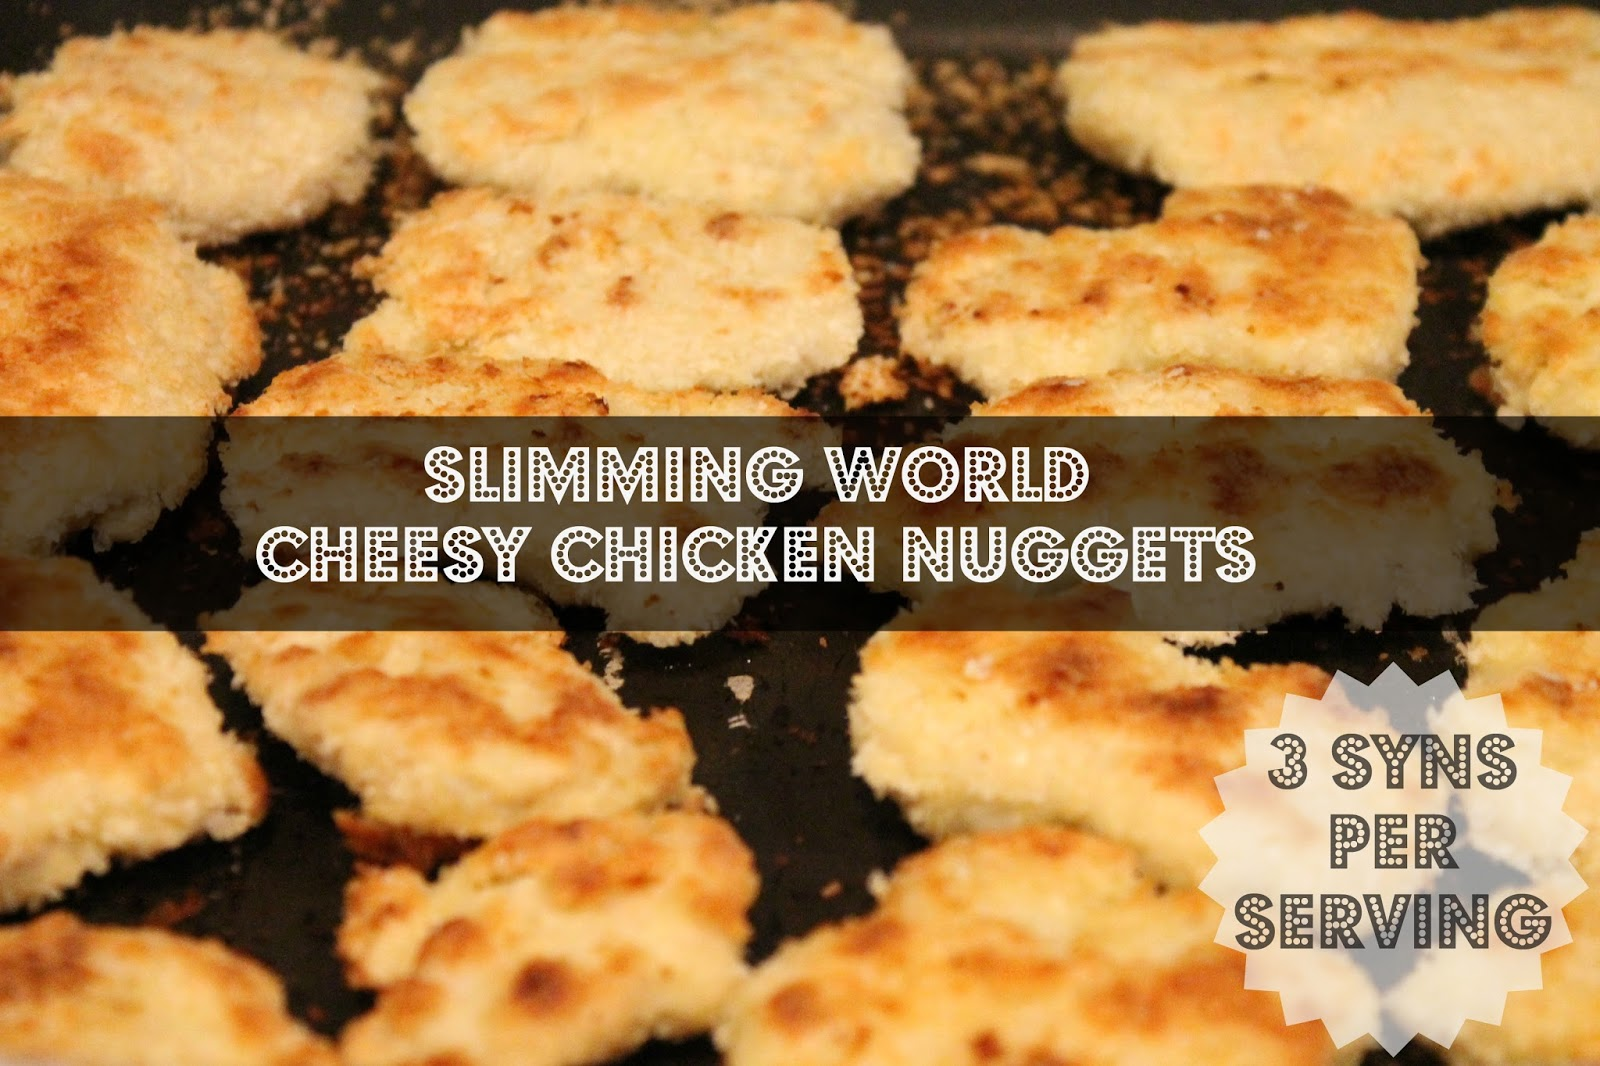 Cheesy Chicken Nuggets On Tray With Text Over Slimming World Cheesy Chicken  Nugget Recipe 3 Syns